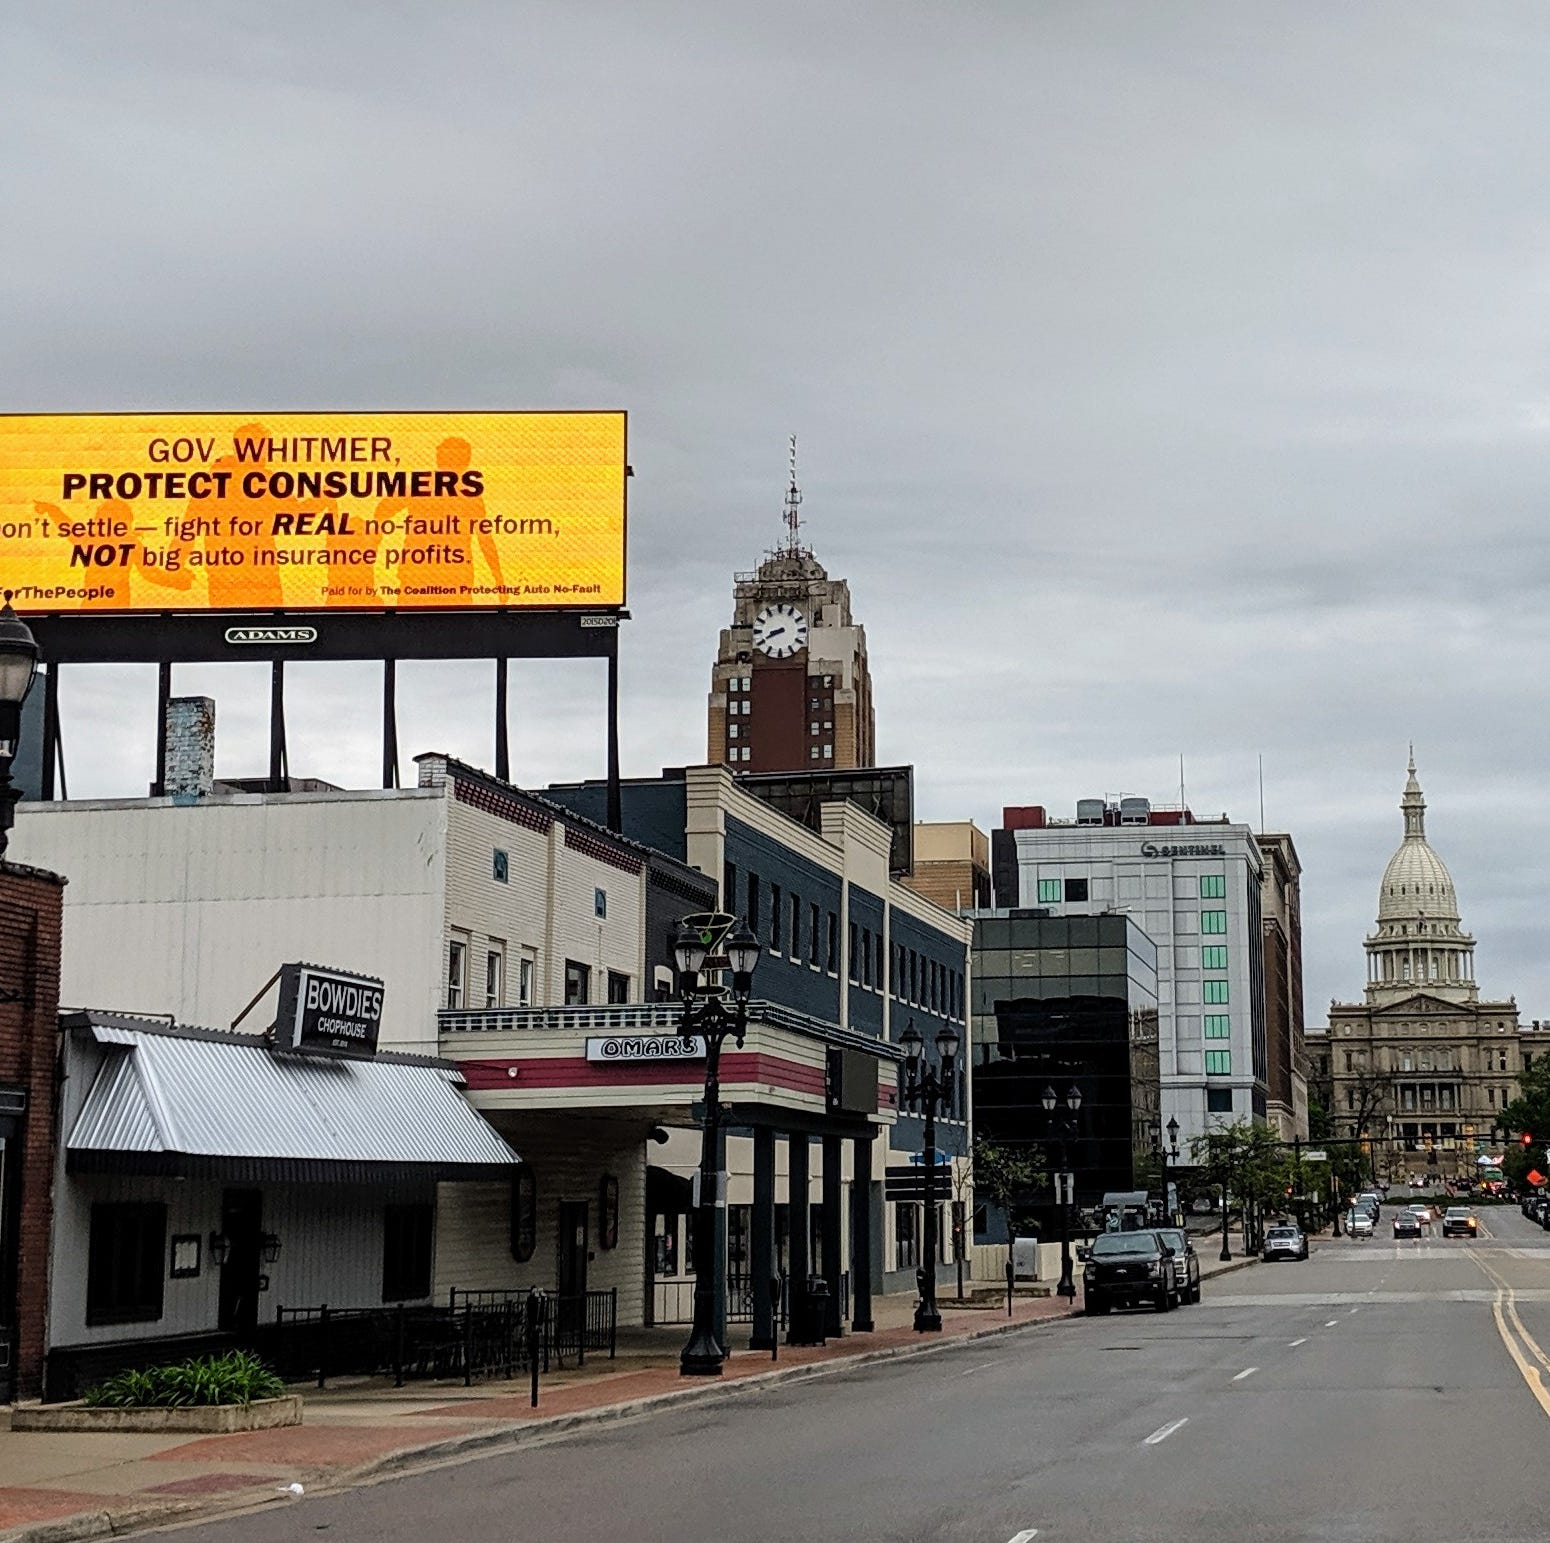 Billboards urge Whitmer not to 'settle' on auto insurance